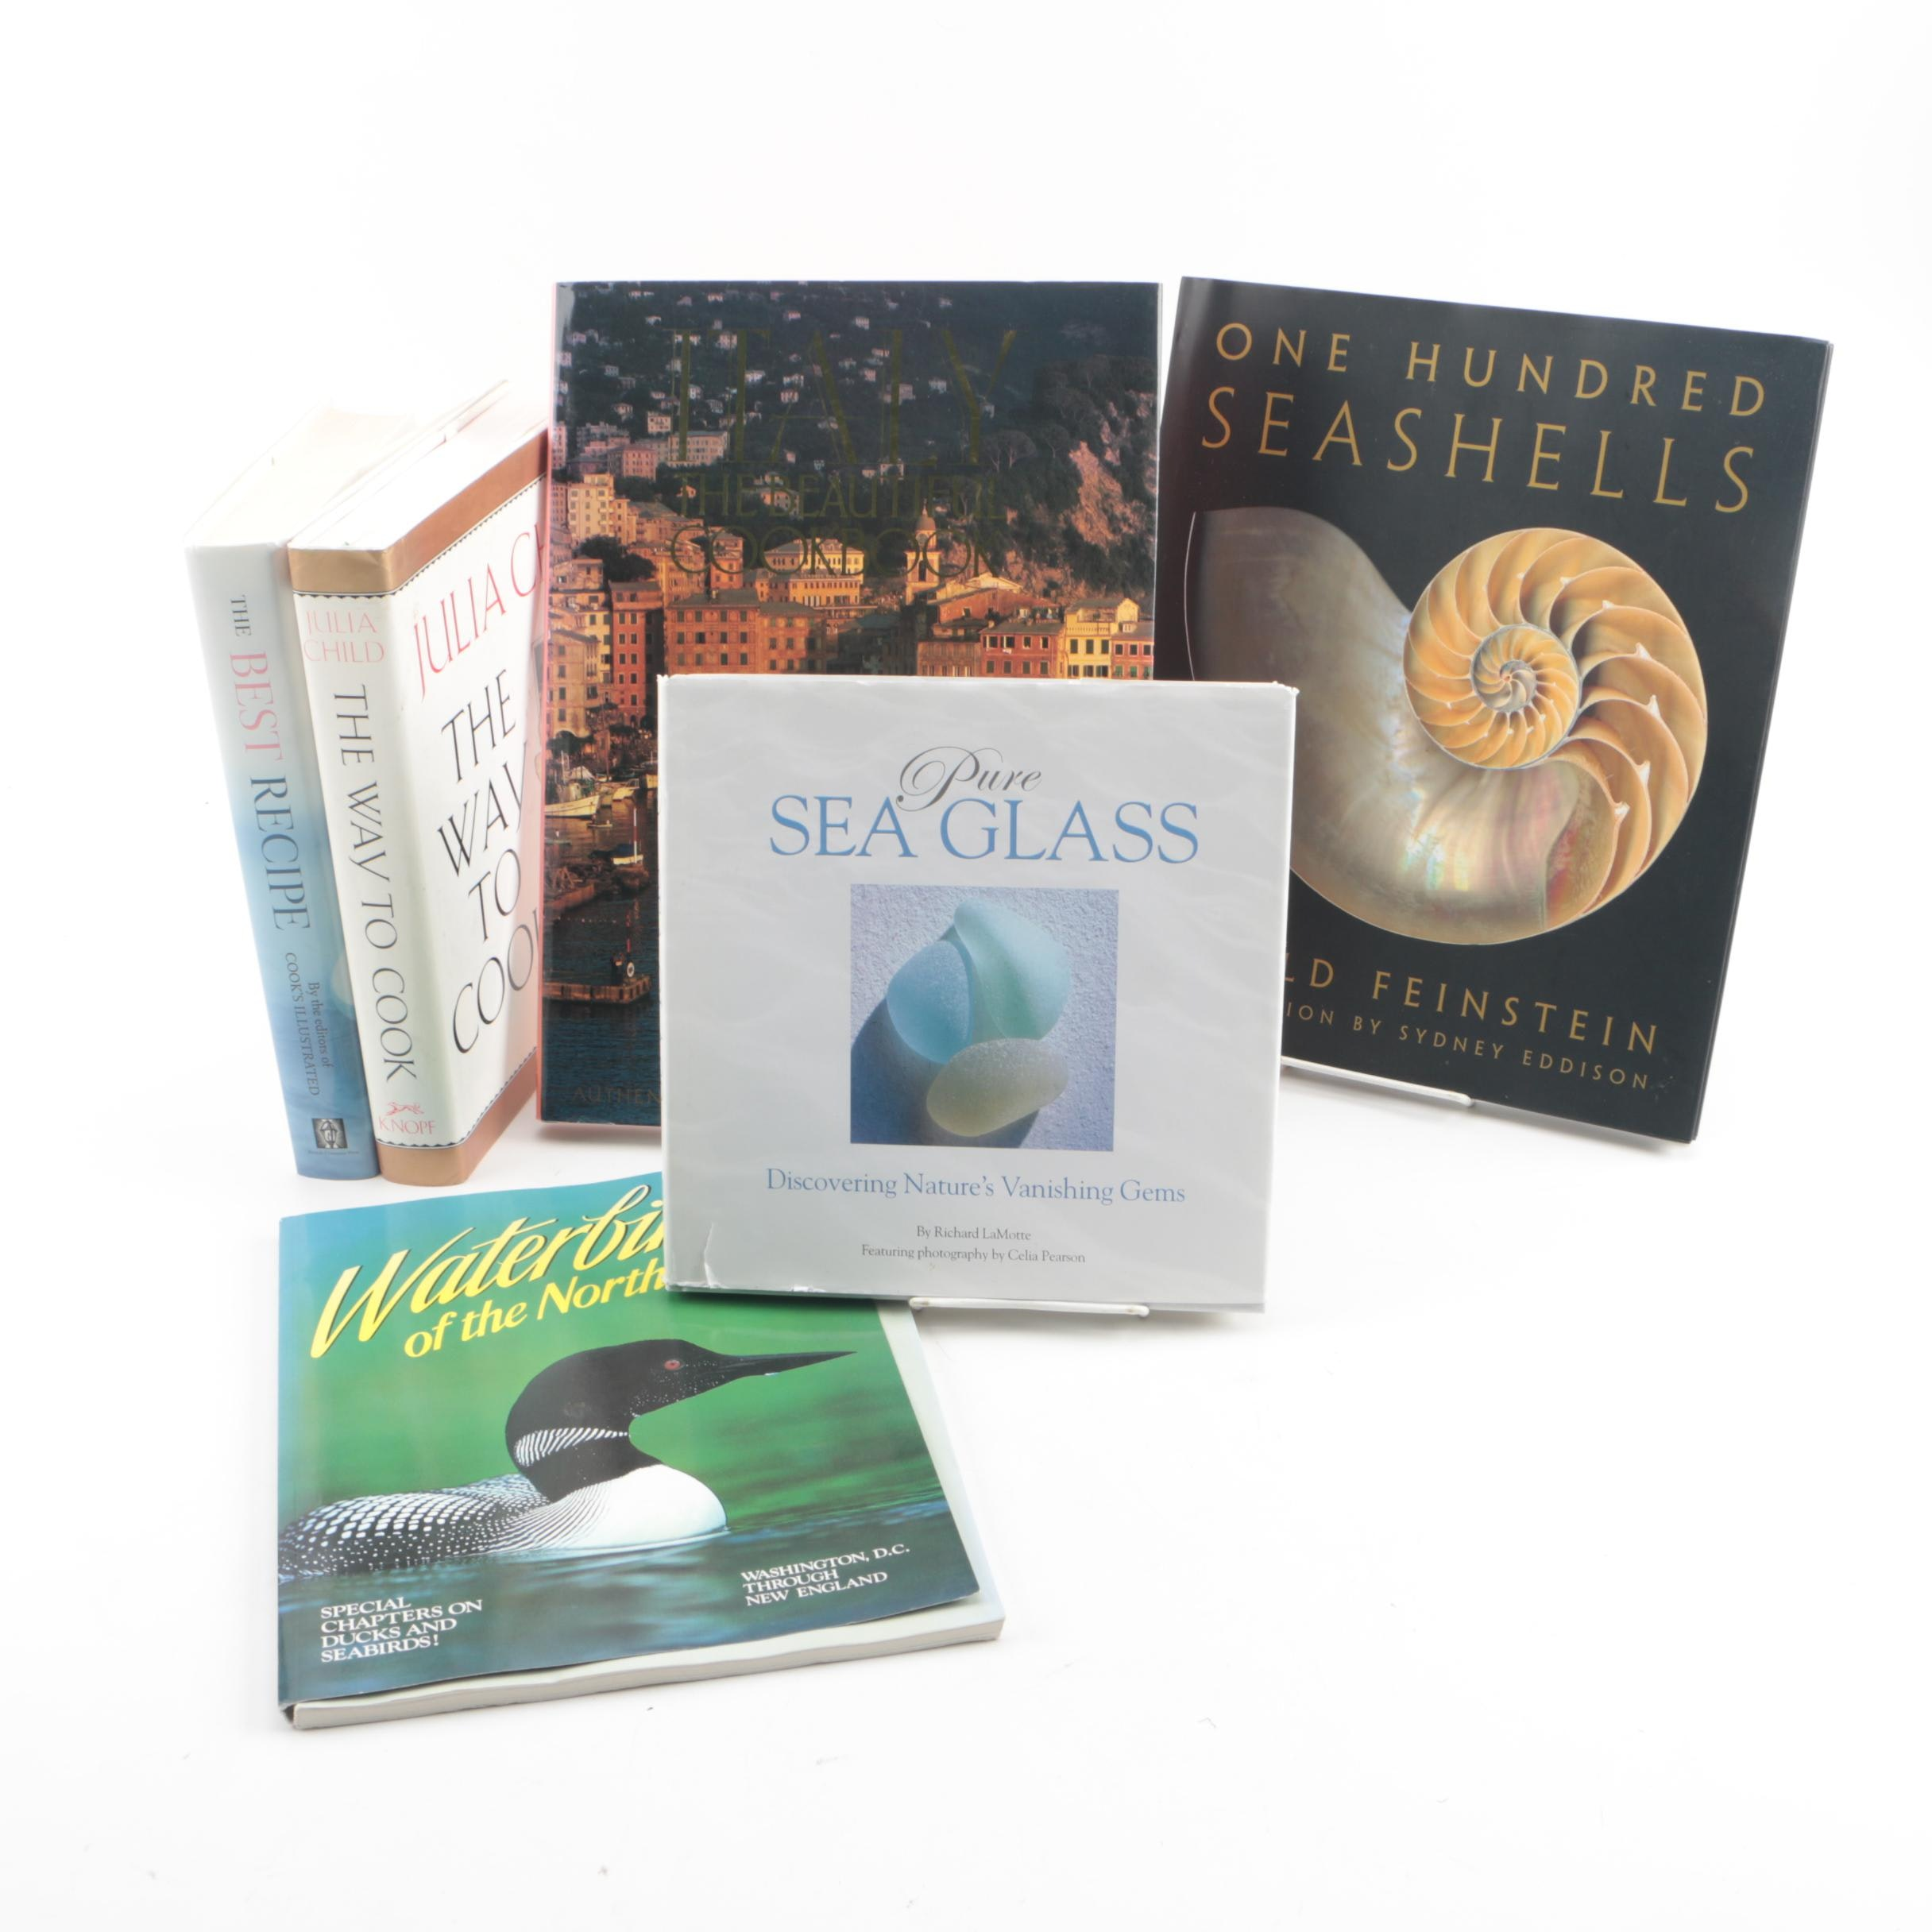 Books on Cooking, Waterbirds, Sea Shells, and Sea Glass